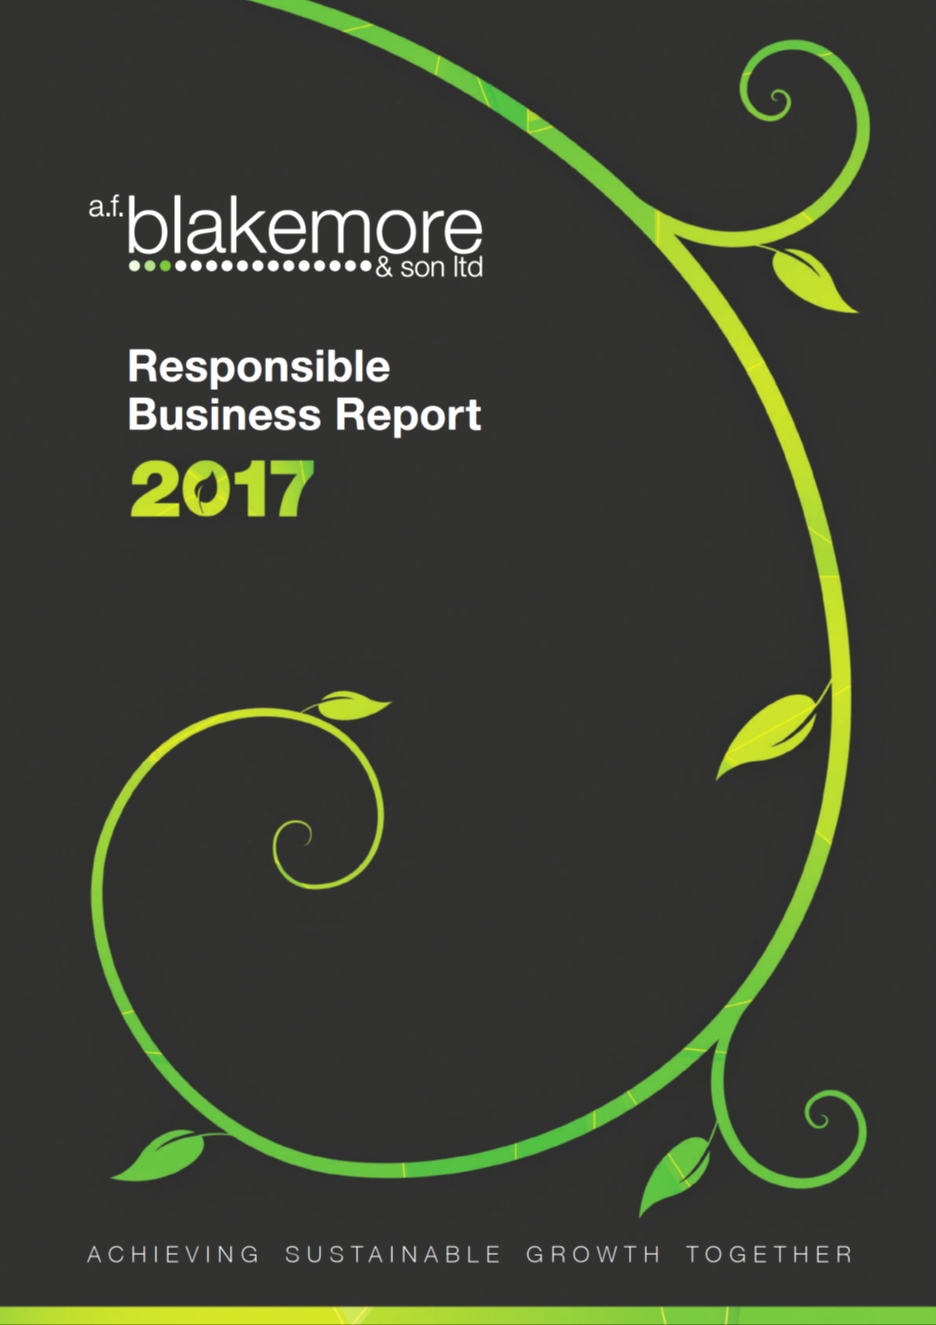 A.F._Blakemore_Son_Ltd_Responsible_Business_Report_2017